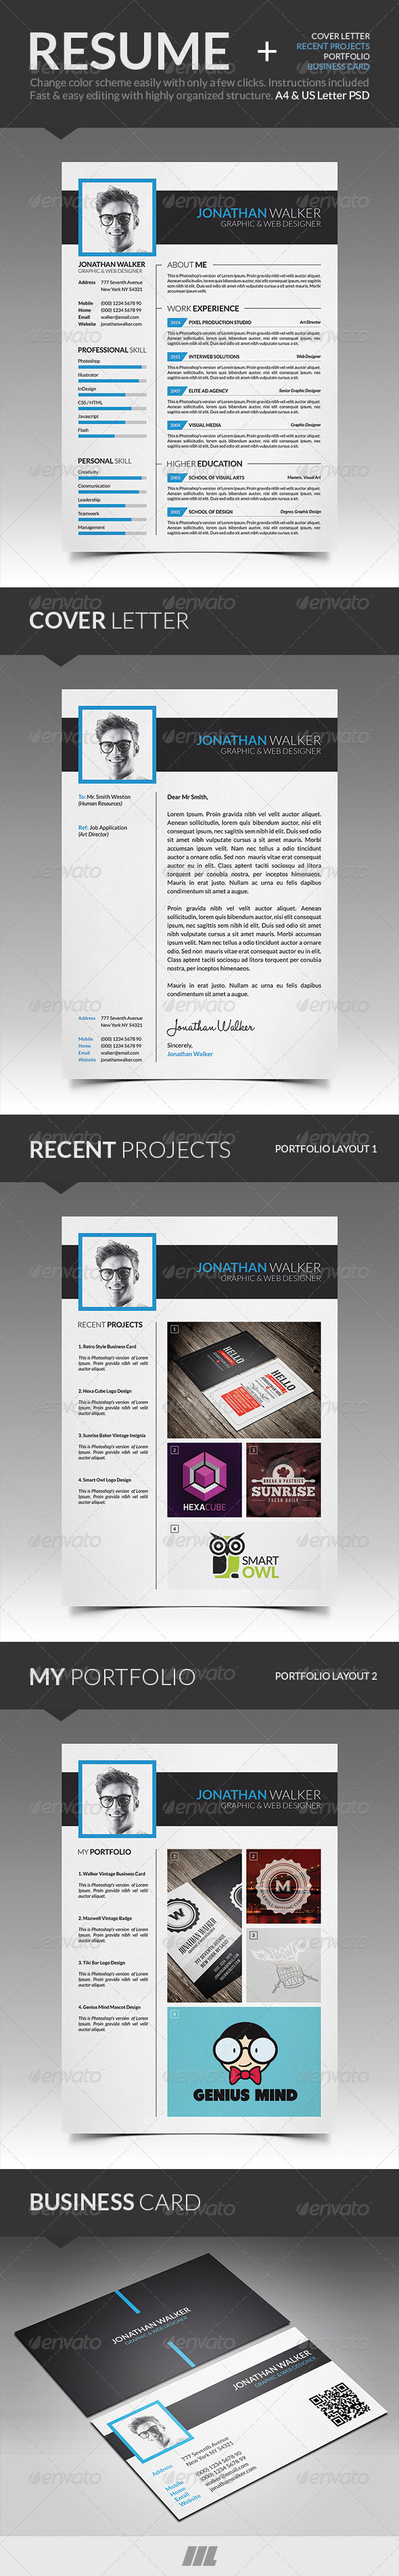 Modern Resume With Business Card by mengloong